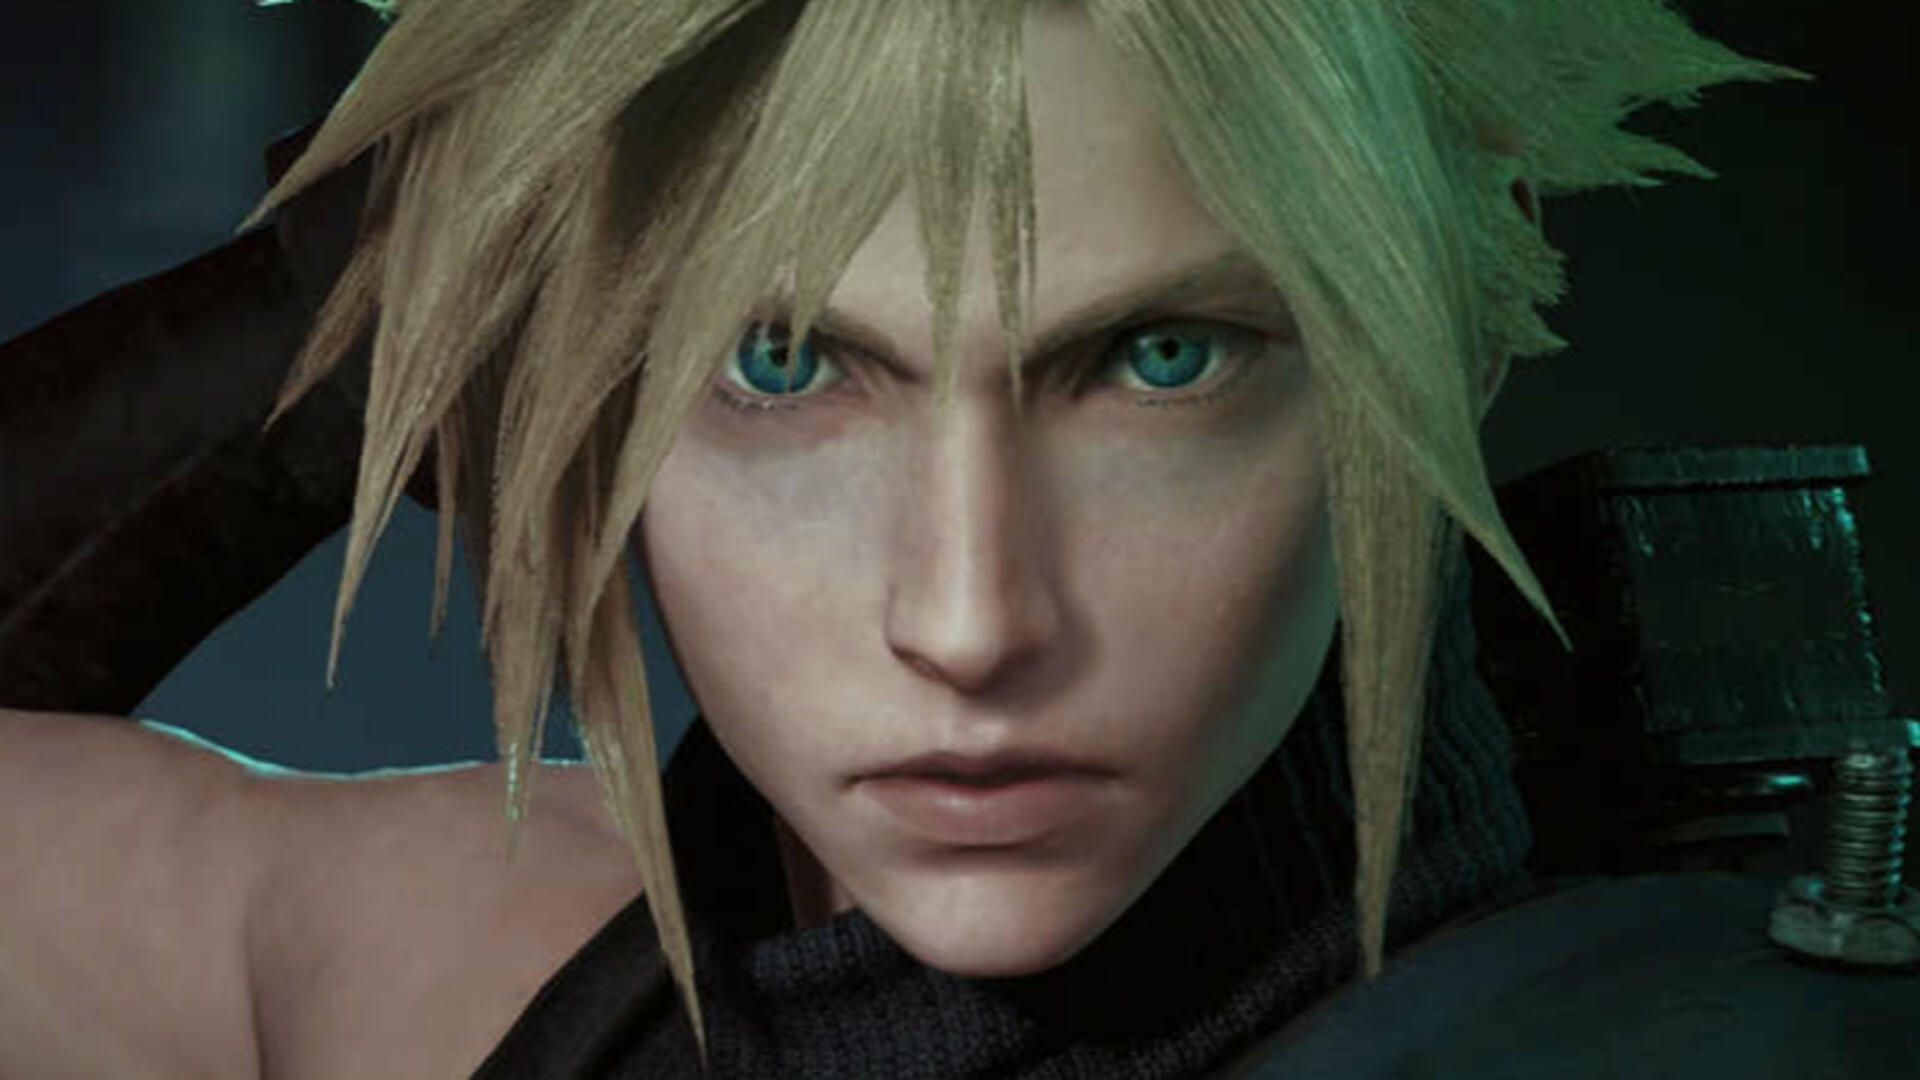 Final Fantasy VII Remake May Include Spin-Off Characters and Settings